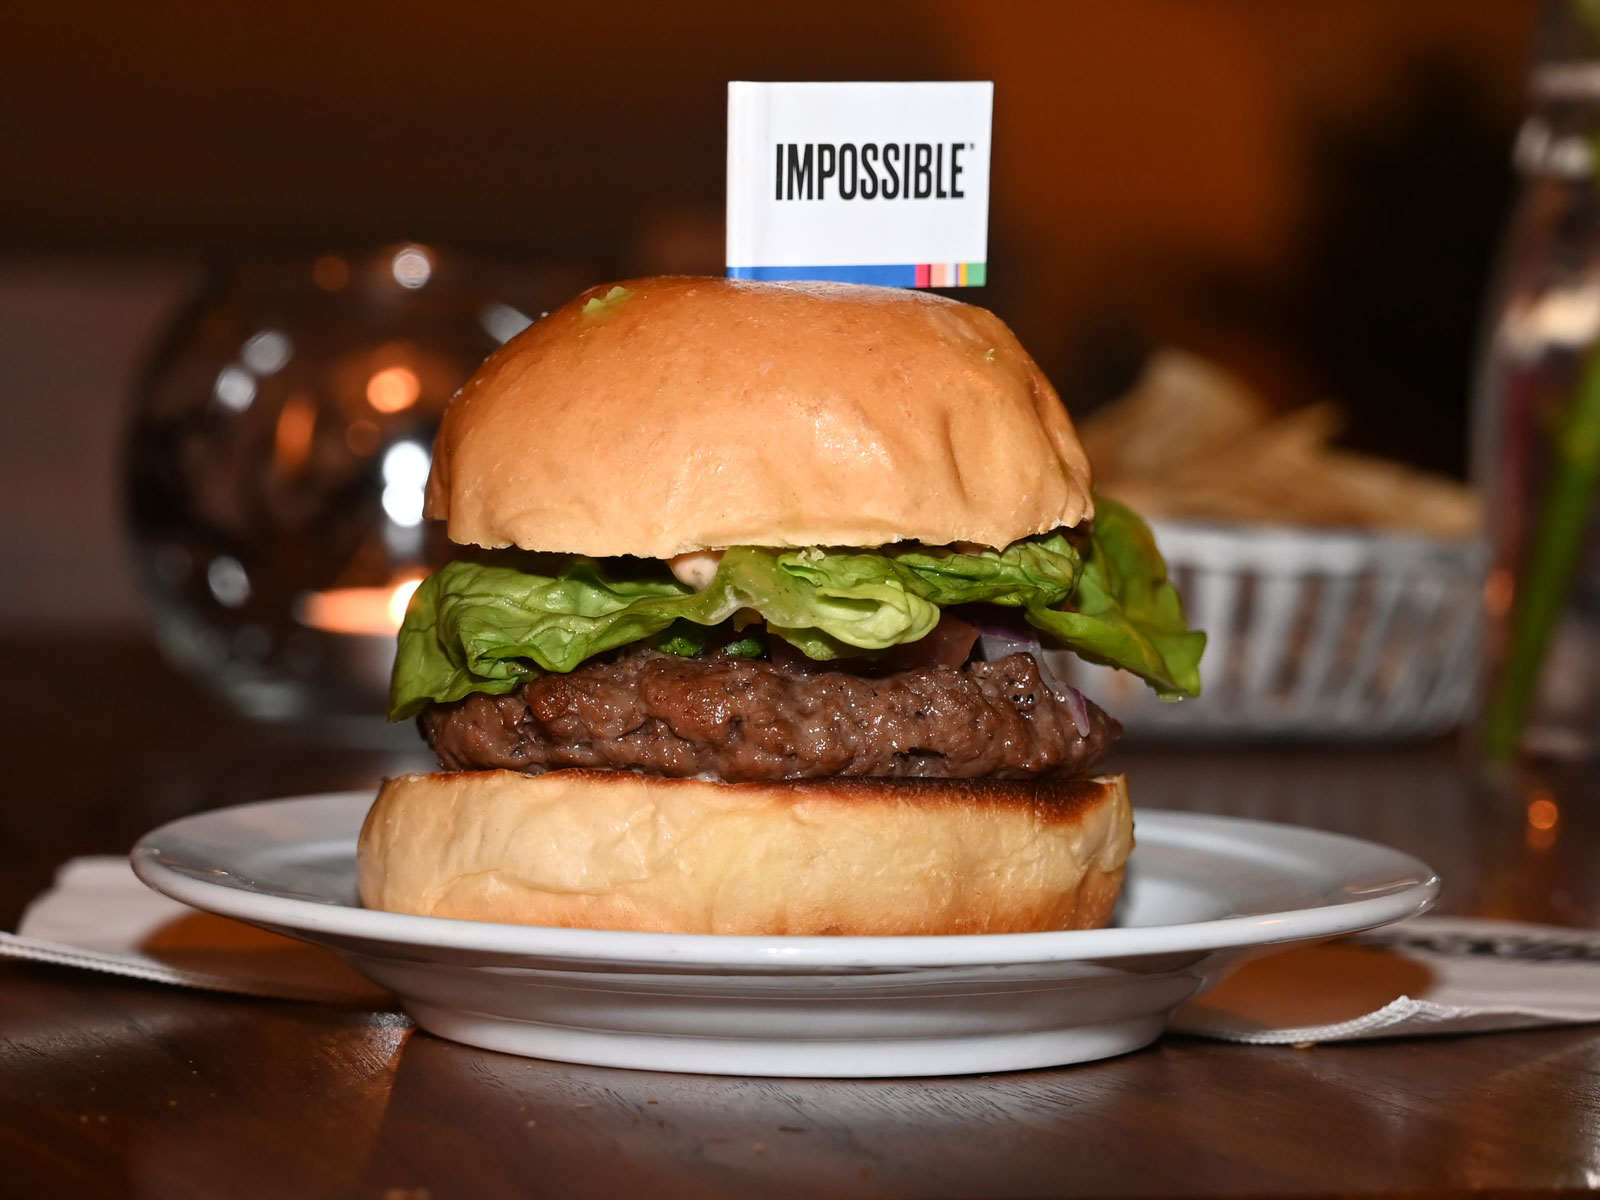 Red Robin Gives Impossible Burger Its Largest Rollout Yet